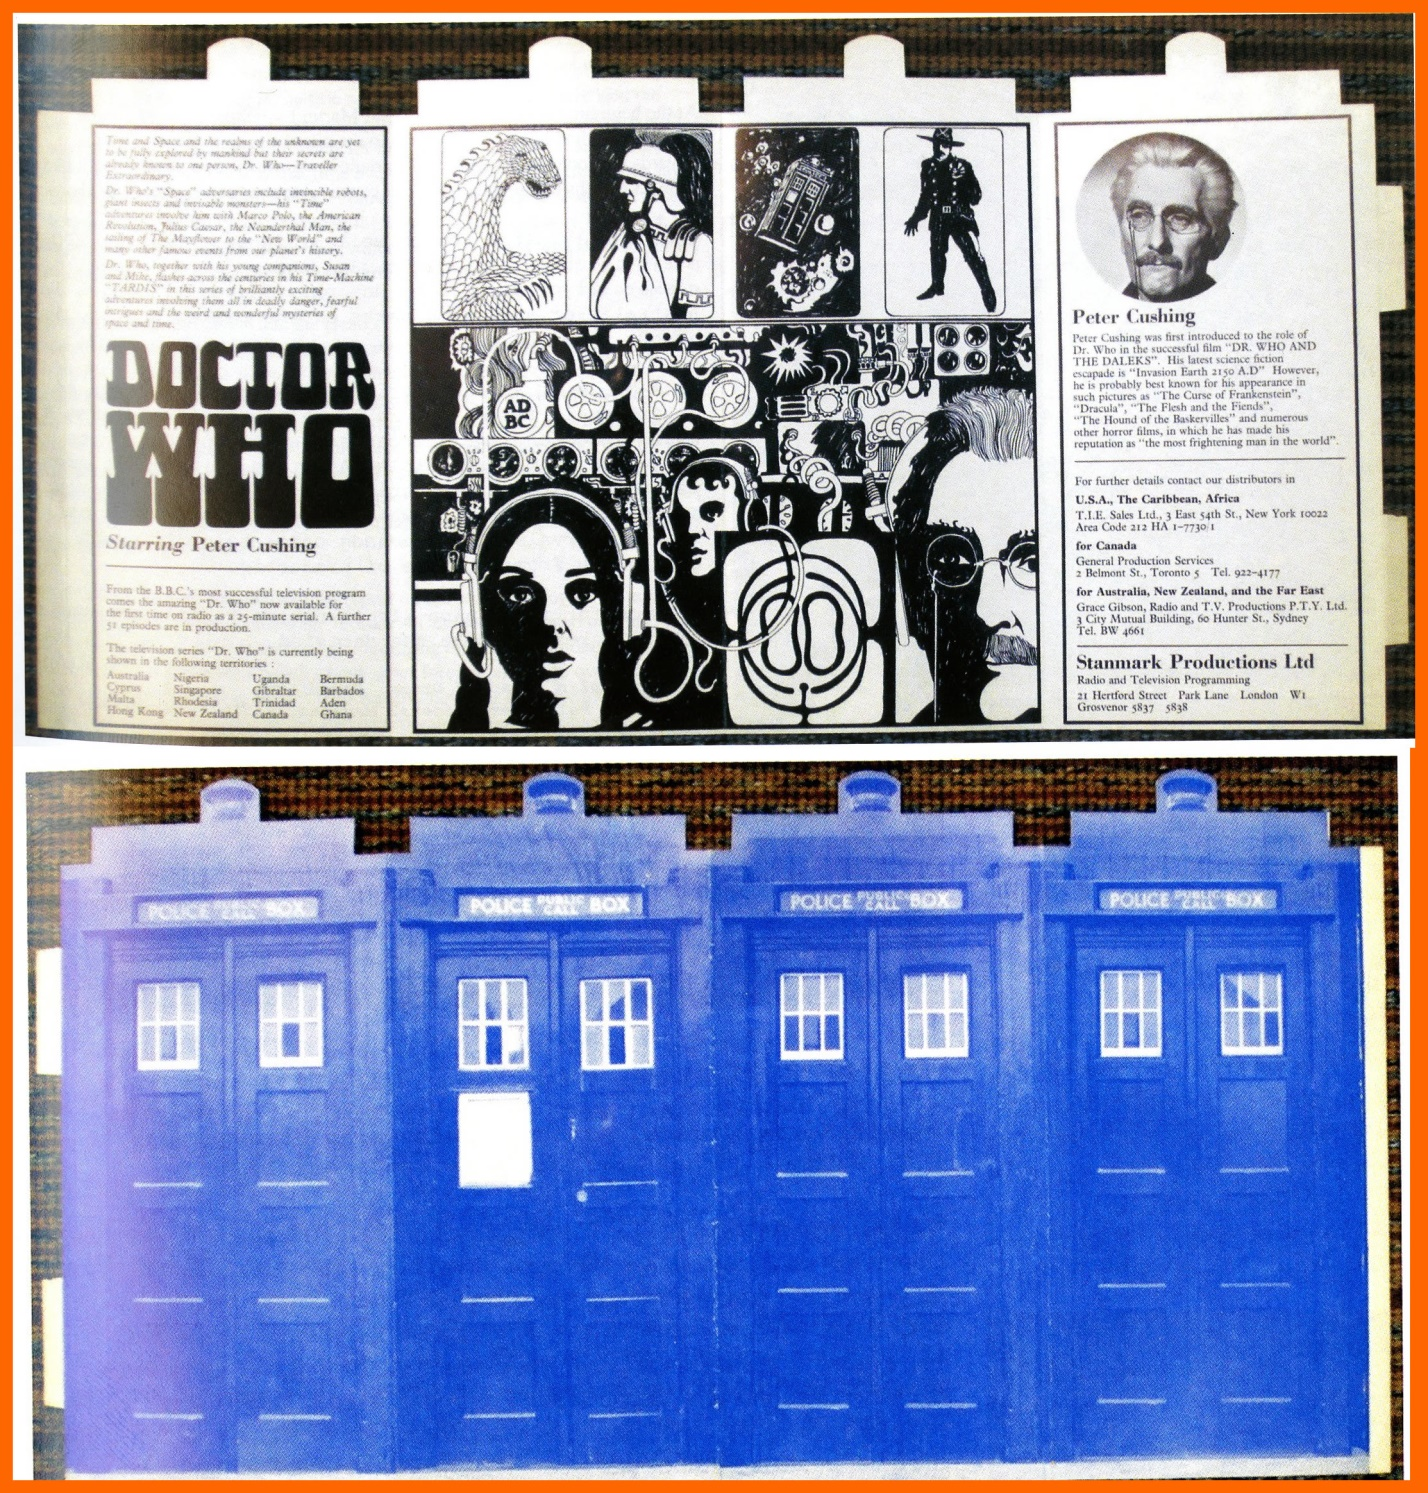 WANTED - Stanmark Productions Ltd., promotional item for a proposed series of Doctor Who radio plays, starring Peter Cushing (Image courtesy of Richard Bignell)